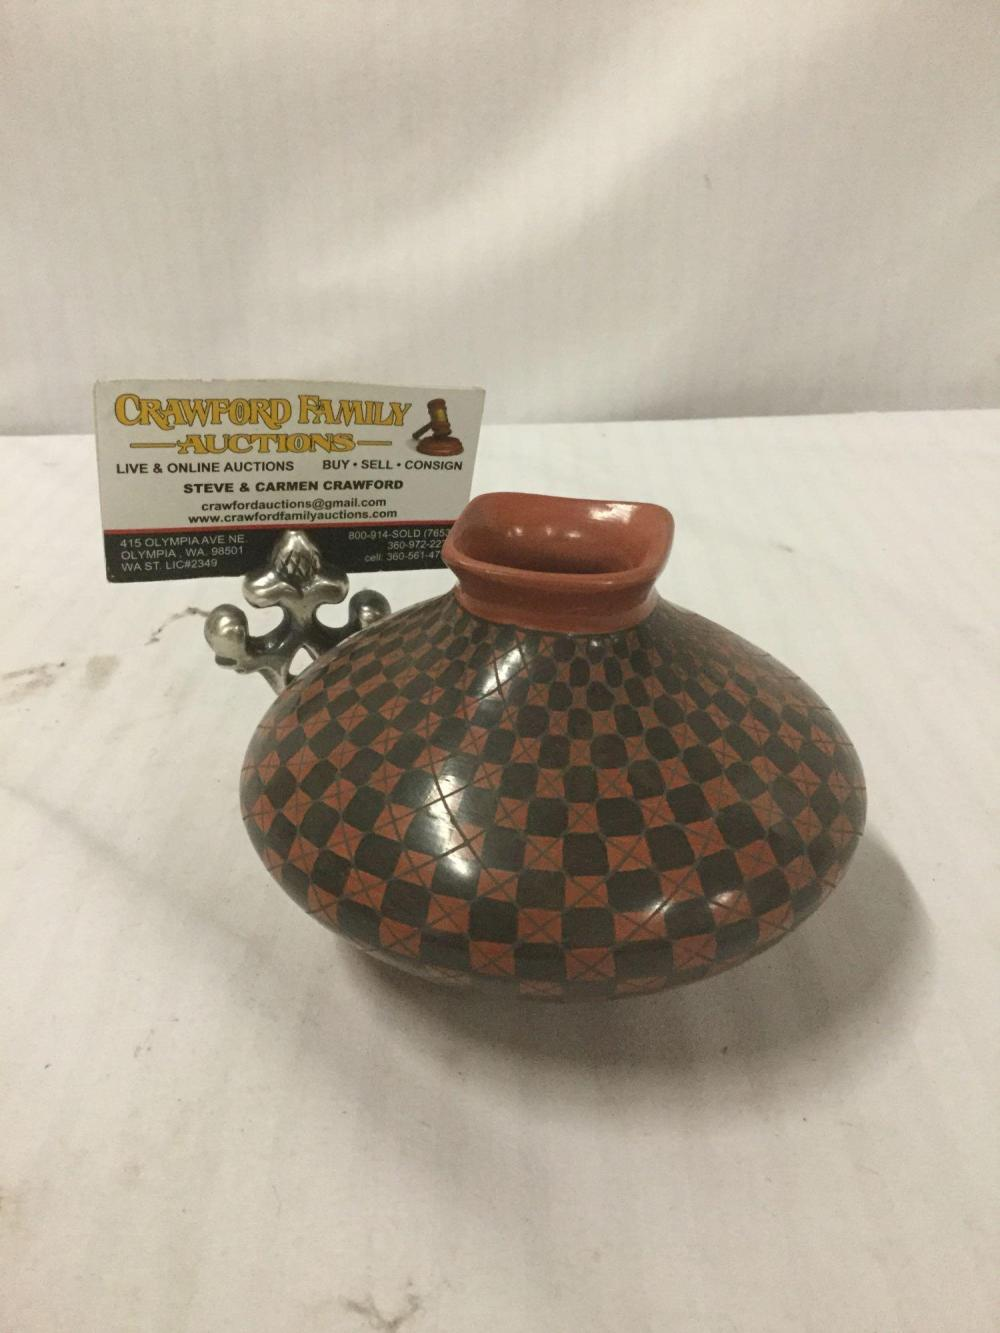 Ceramic vase with a checkerboard pattern from the State of Chihuahua in Mexico - signed by artist